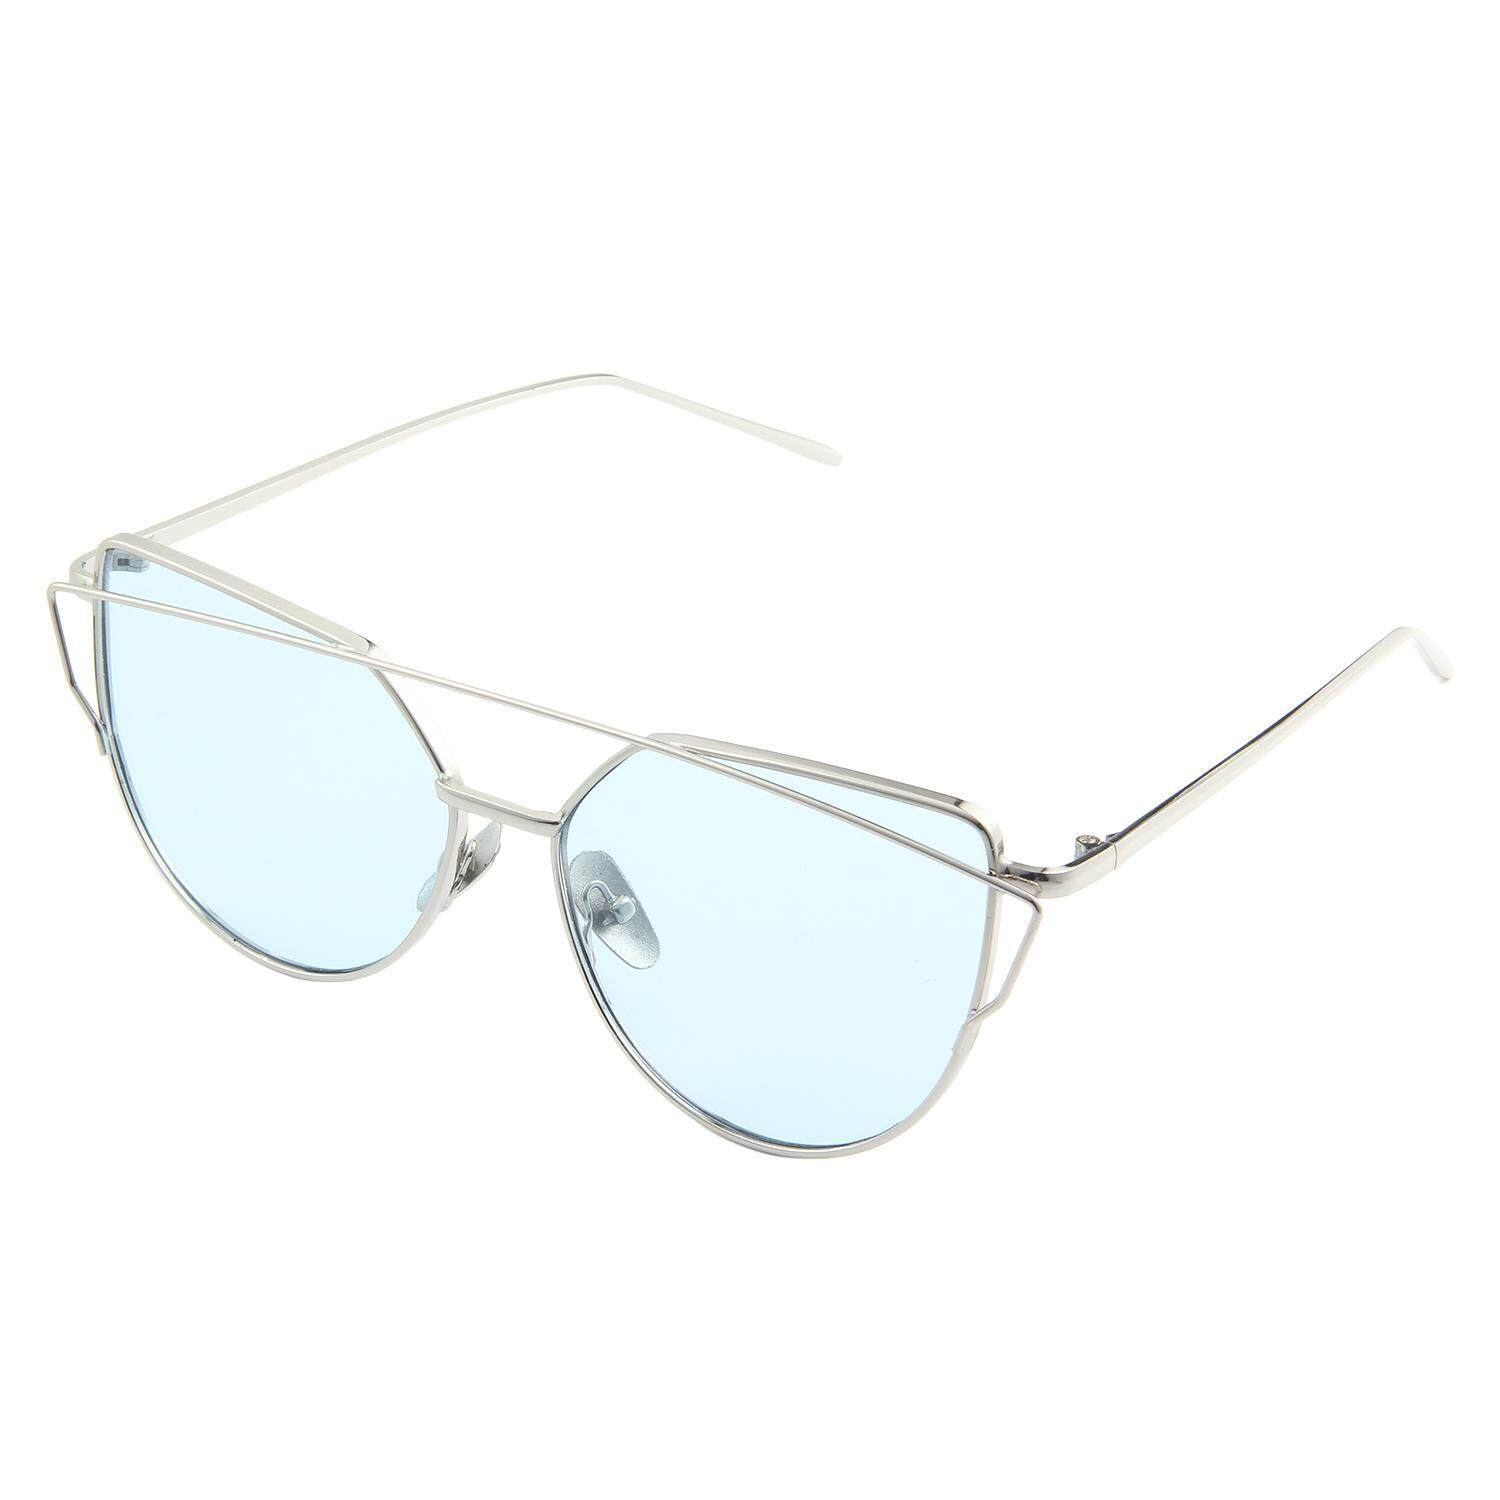 1efea5cf2d83e MINI DIXIU Cat Eye Mirrored Flat Lenses Metal Frame Women Sunglasses UV400  Silver Frame Ocean Blue